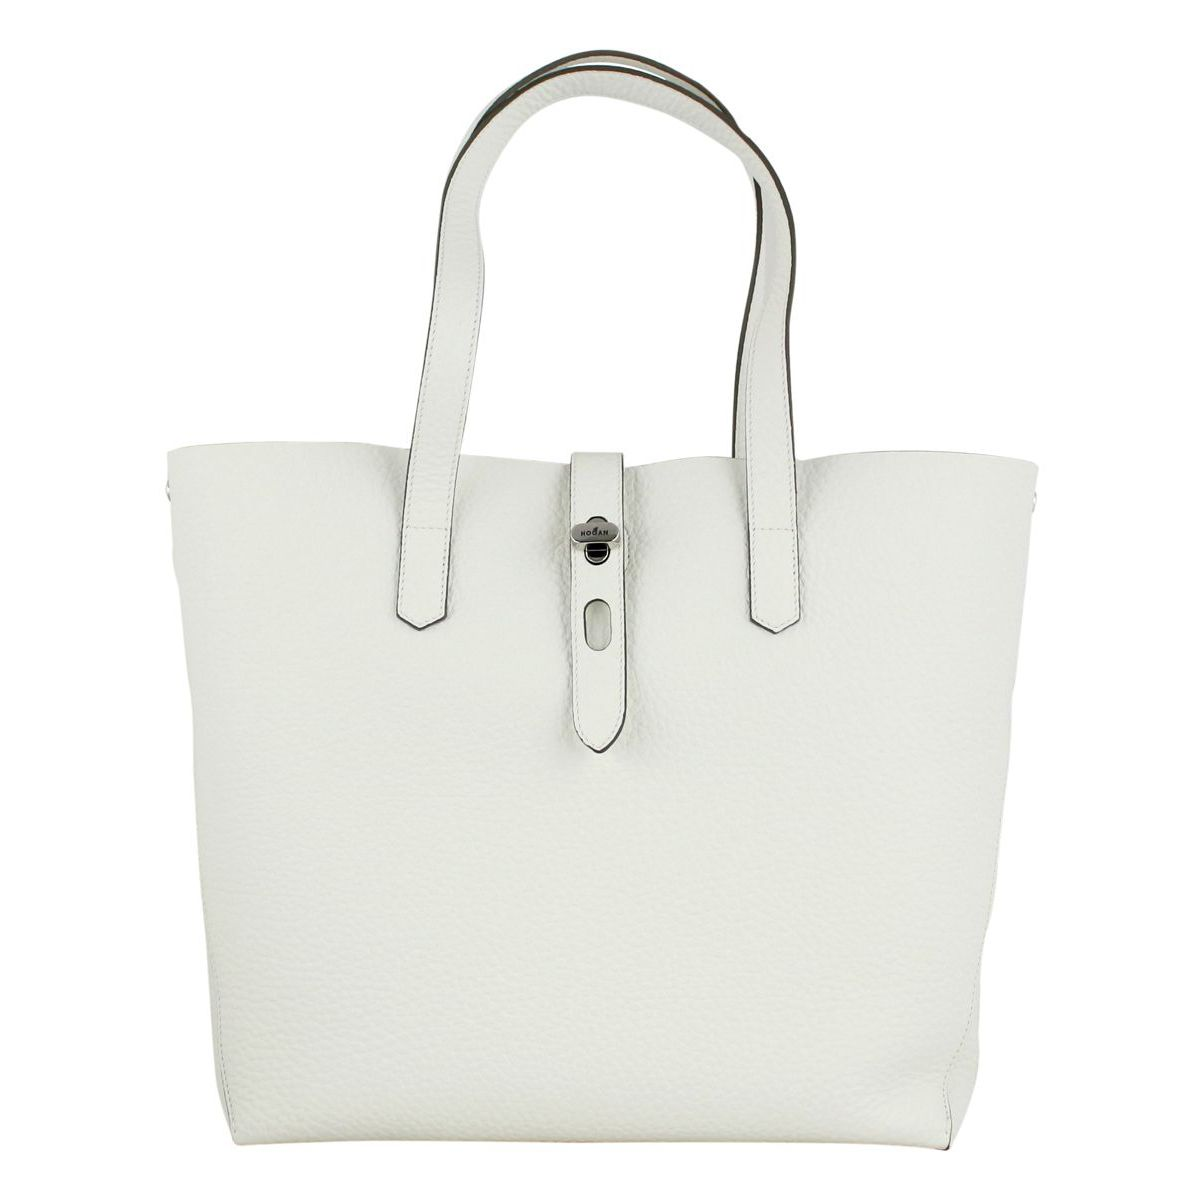 0898ee5132e Large shopping bag in leather Butter, Hogan kbw010a1400kbc ...